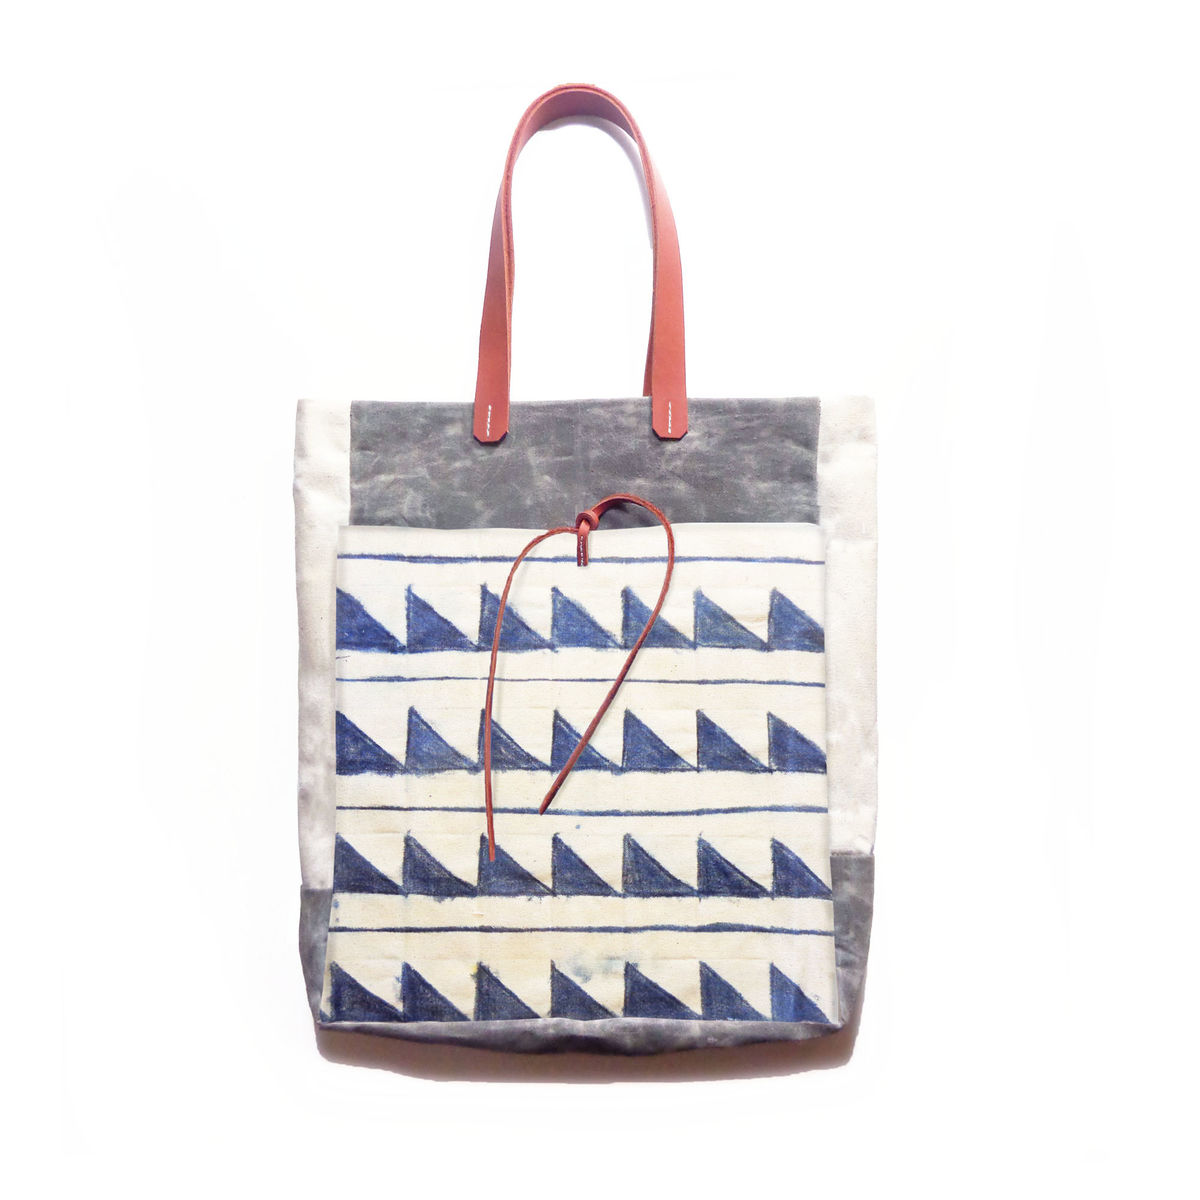 Market Tote w/ Leather Handles - Indigo Zag no Zig - product images  of